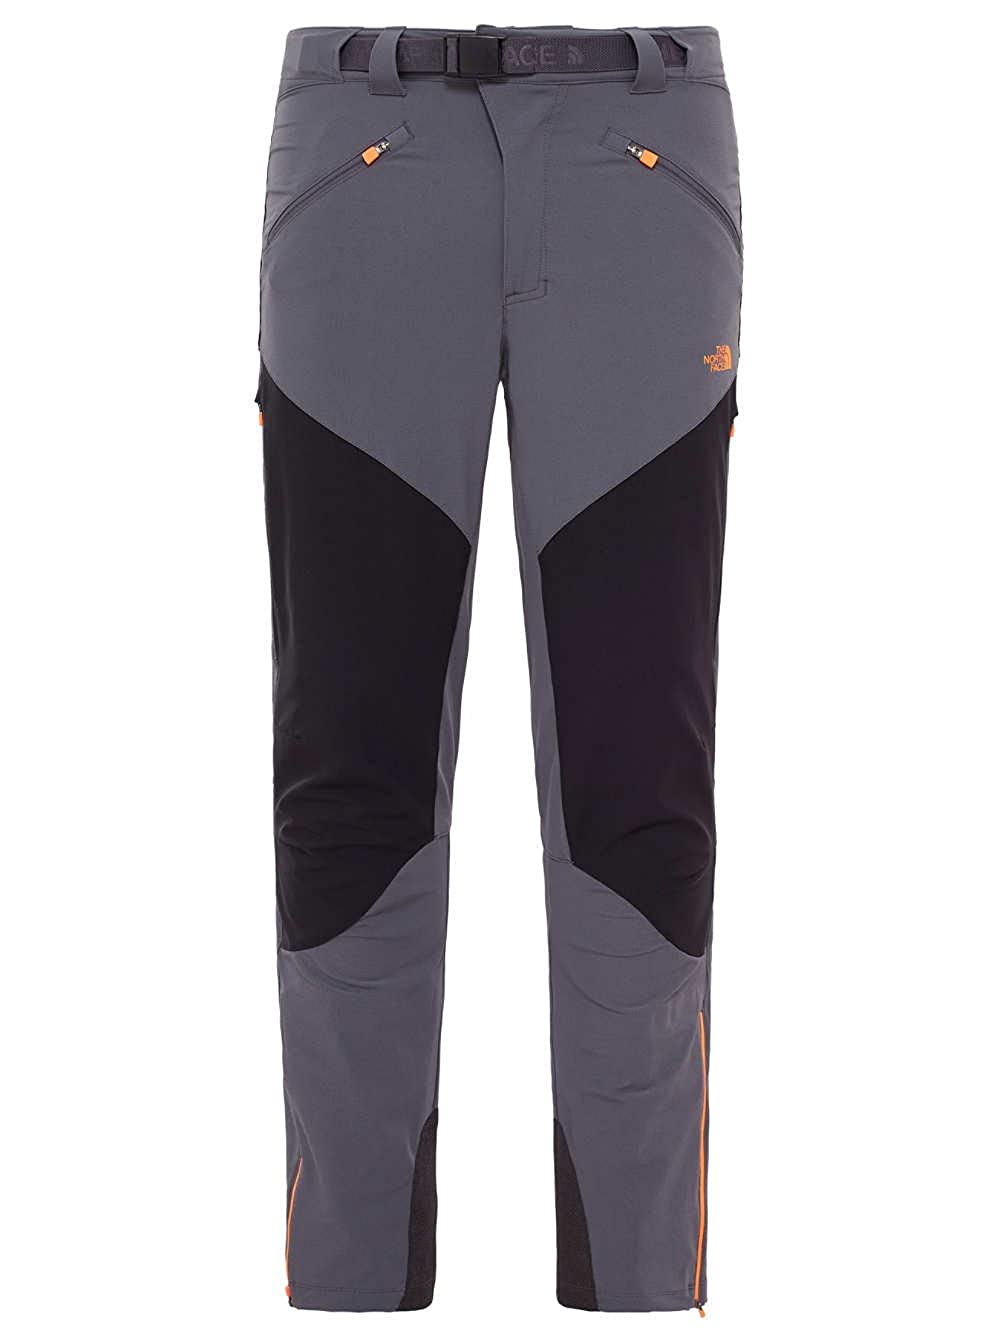 THE NORTH FACE M Winter Speedcross-eu Herren Hose, Grau, Größe 28